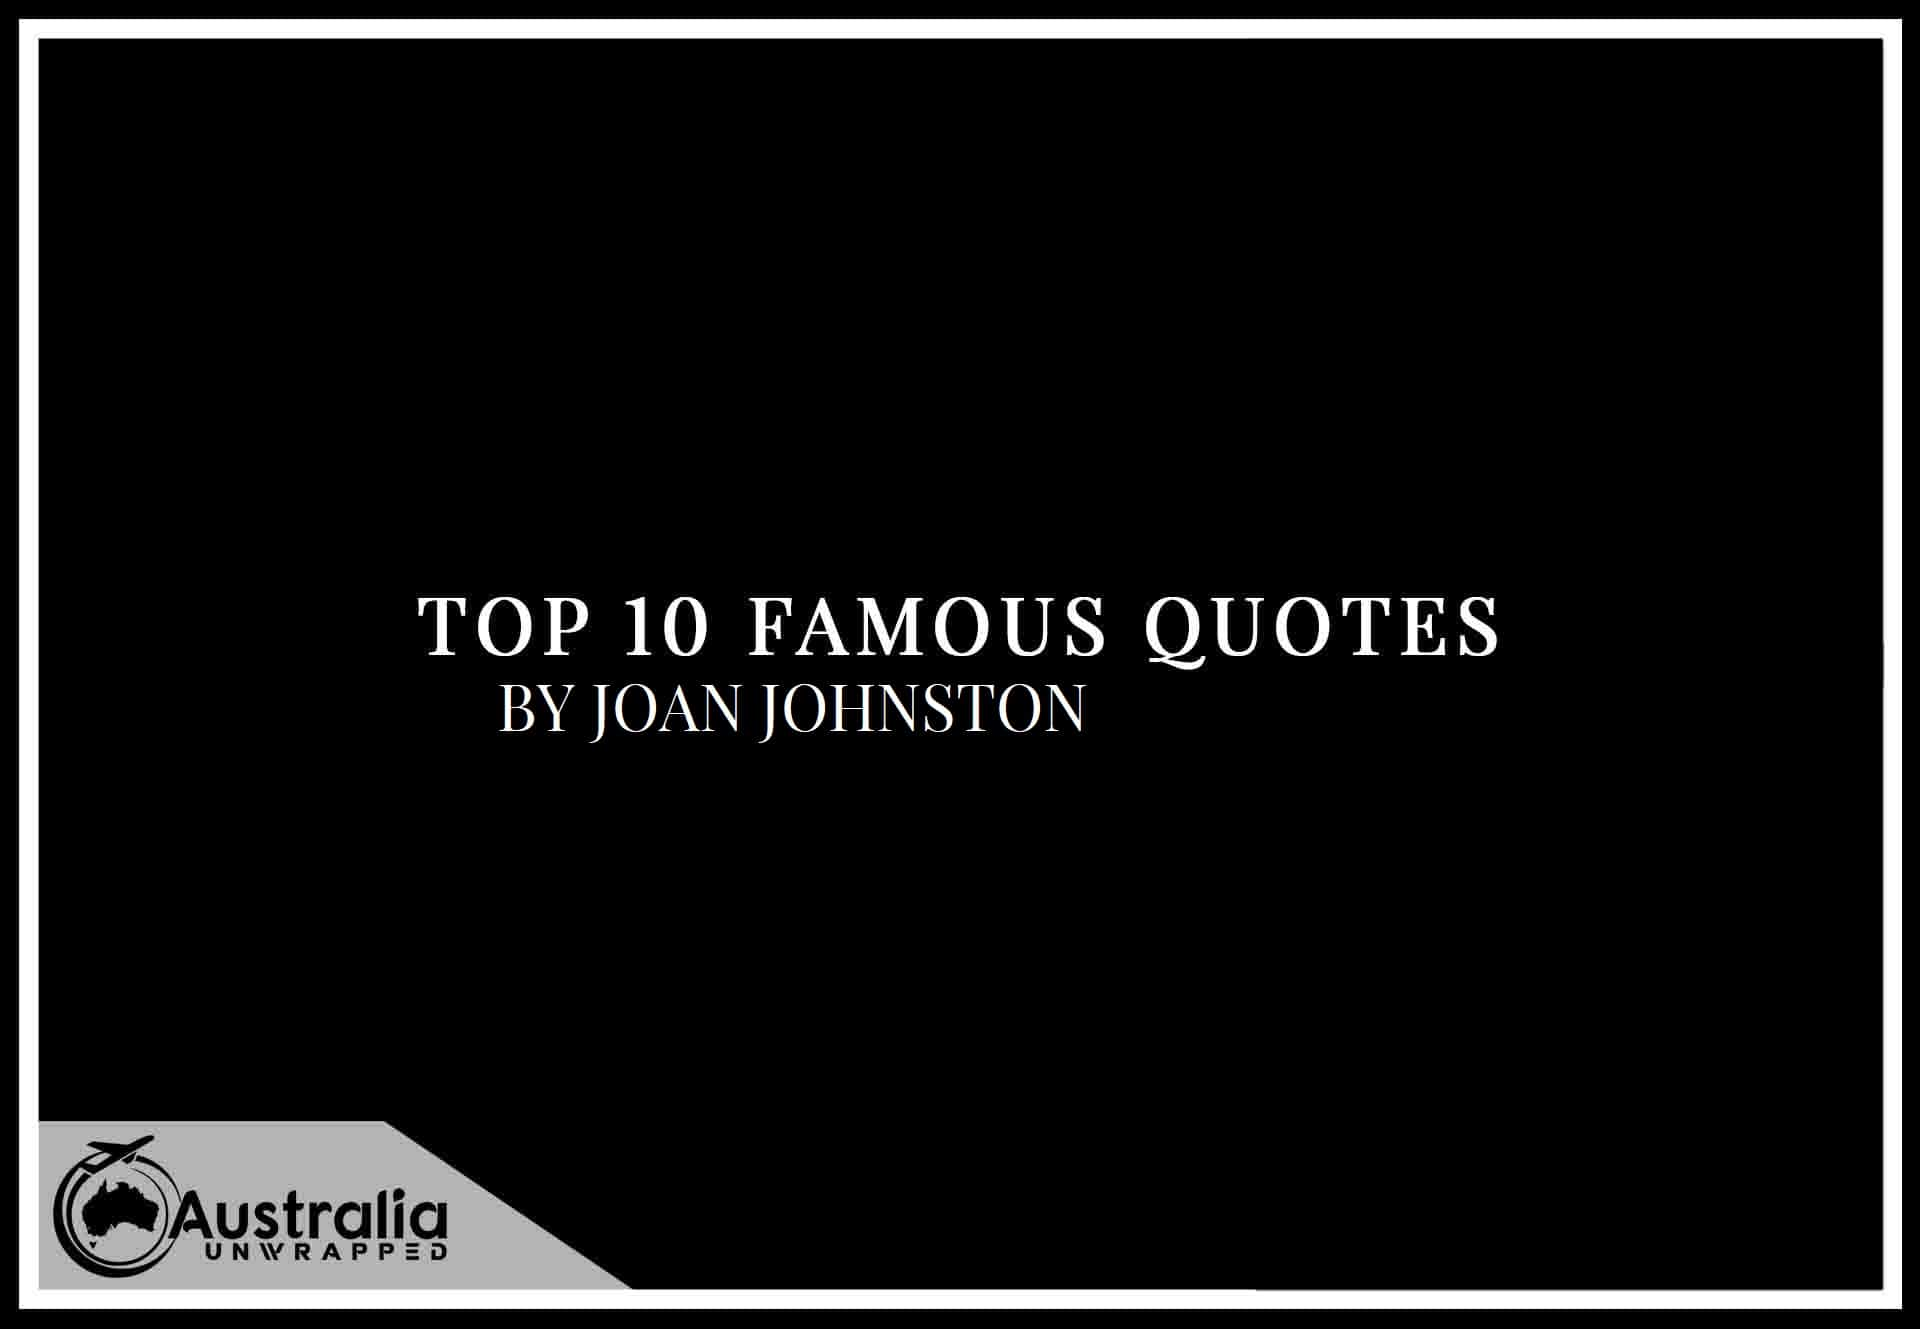 Top 10 Famous Quotes by Author Joan Johnston